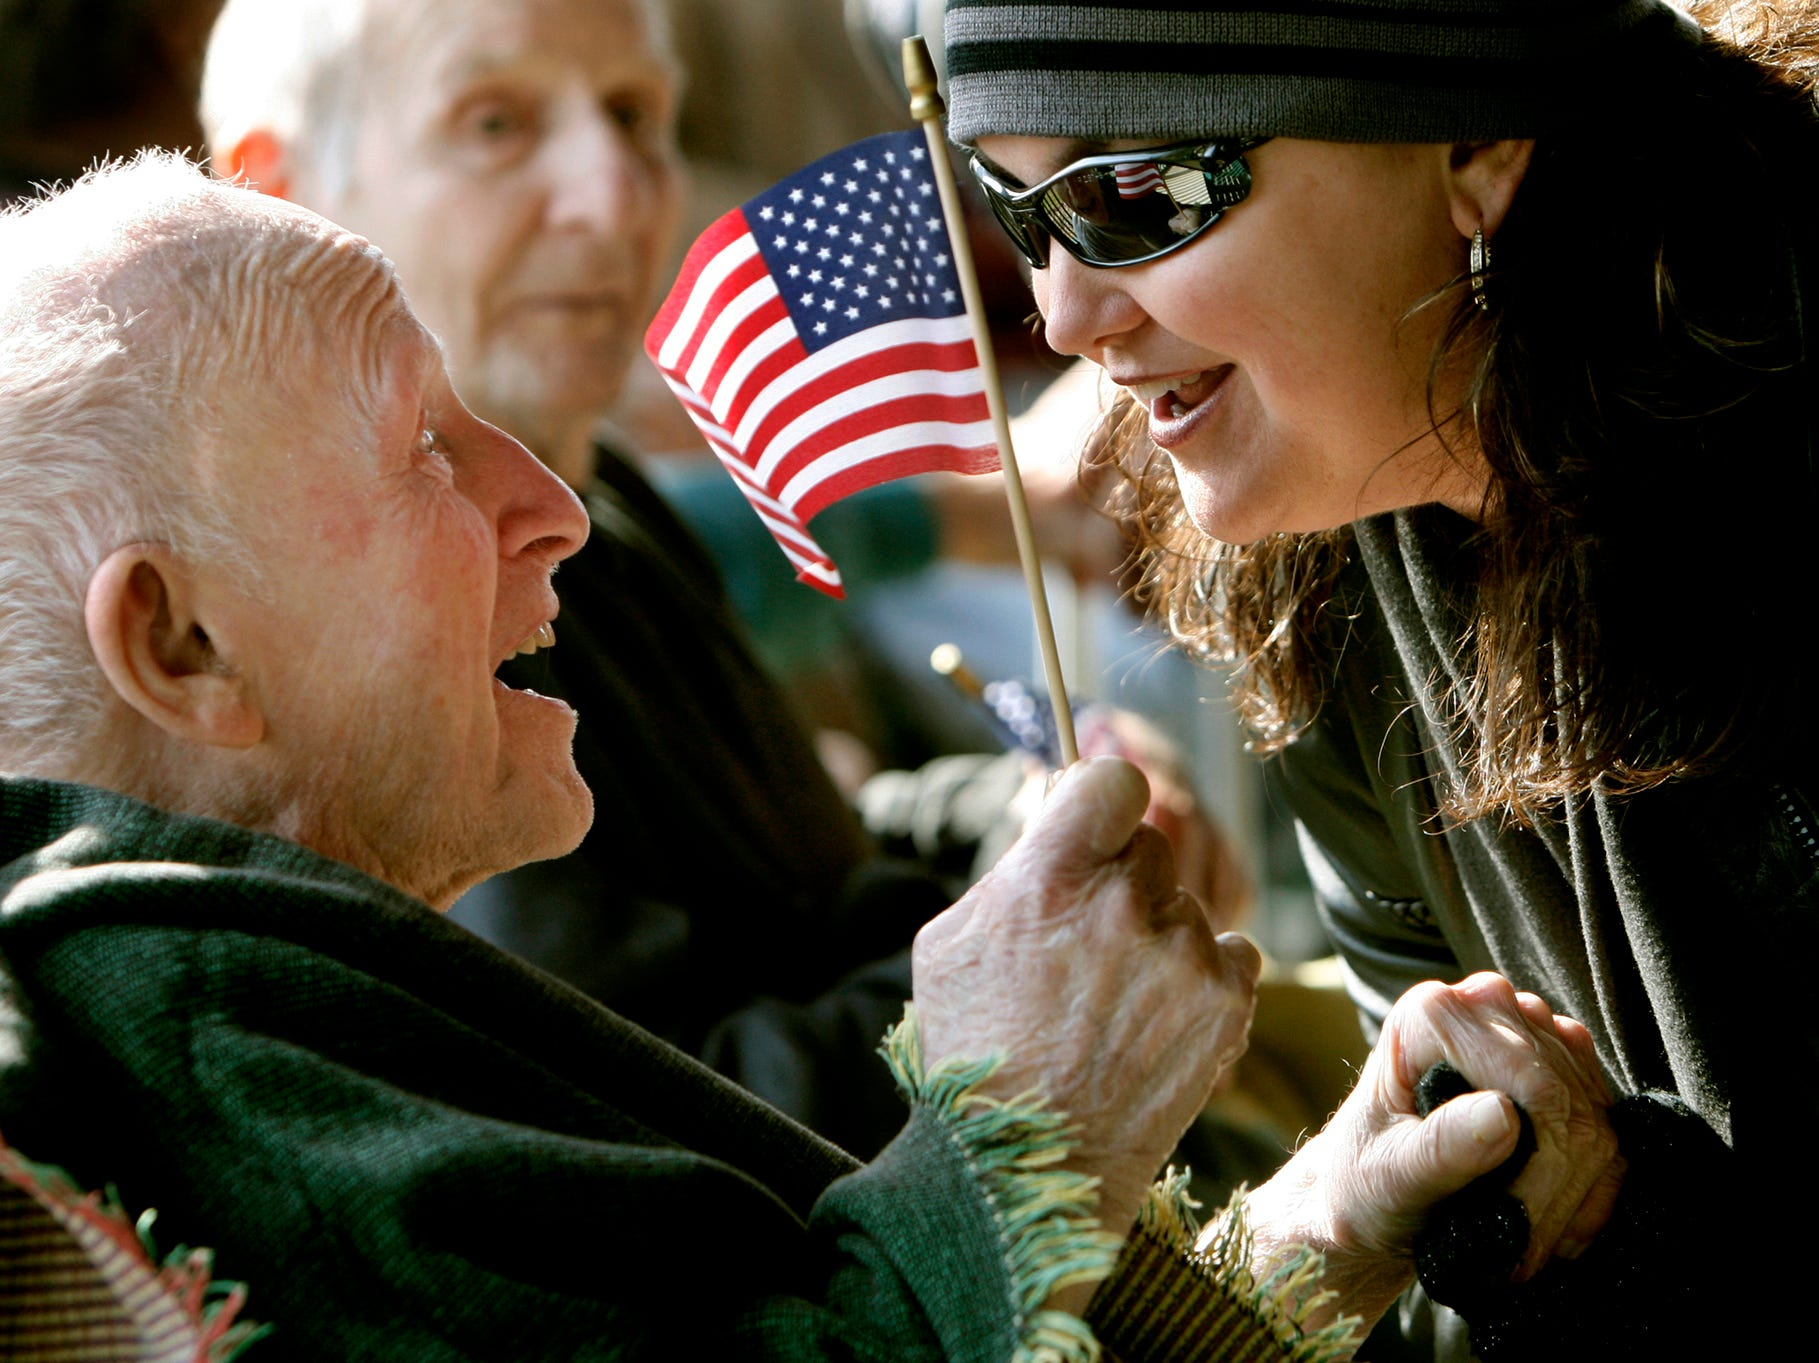 Shannon Junkins, right, of Anderson greets Frank Stone of Atlanta, Ga. Sunday at the Richard M. Campbell Veterans Nursing Home in Anderson.  Nearly 300 motorcycle riders started a ride from the Anderson County Veterans Monument to the veterans home to bring gifts the residents, as well as watching skydivers drop in as part of Veteran's Day in 2007.